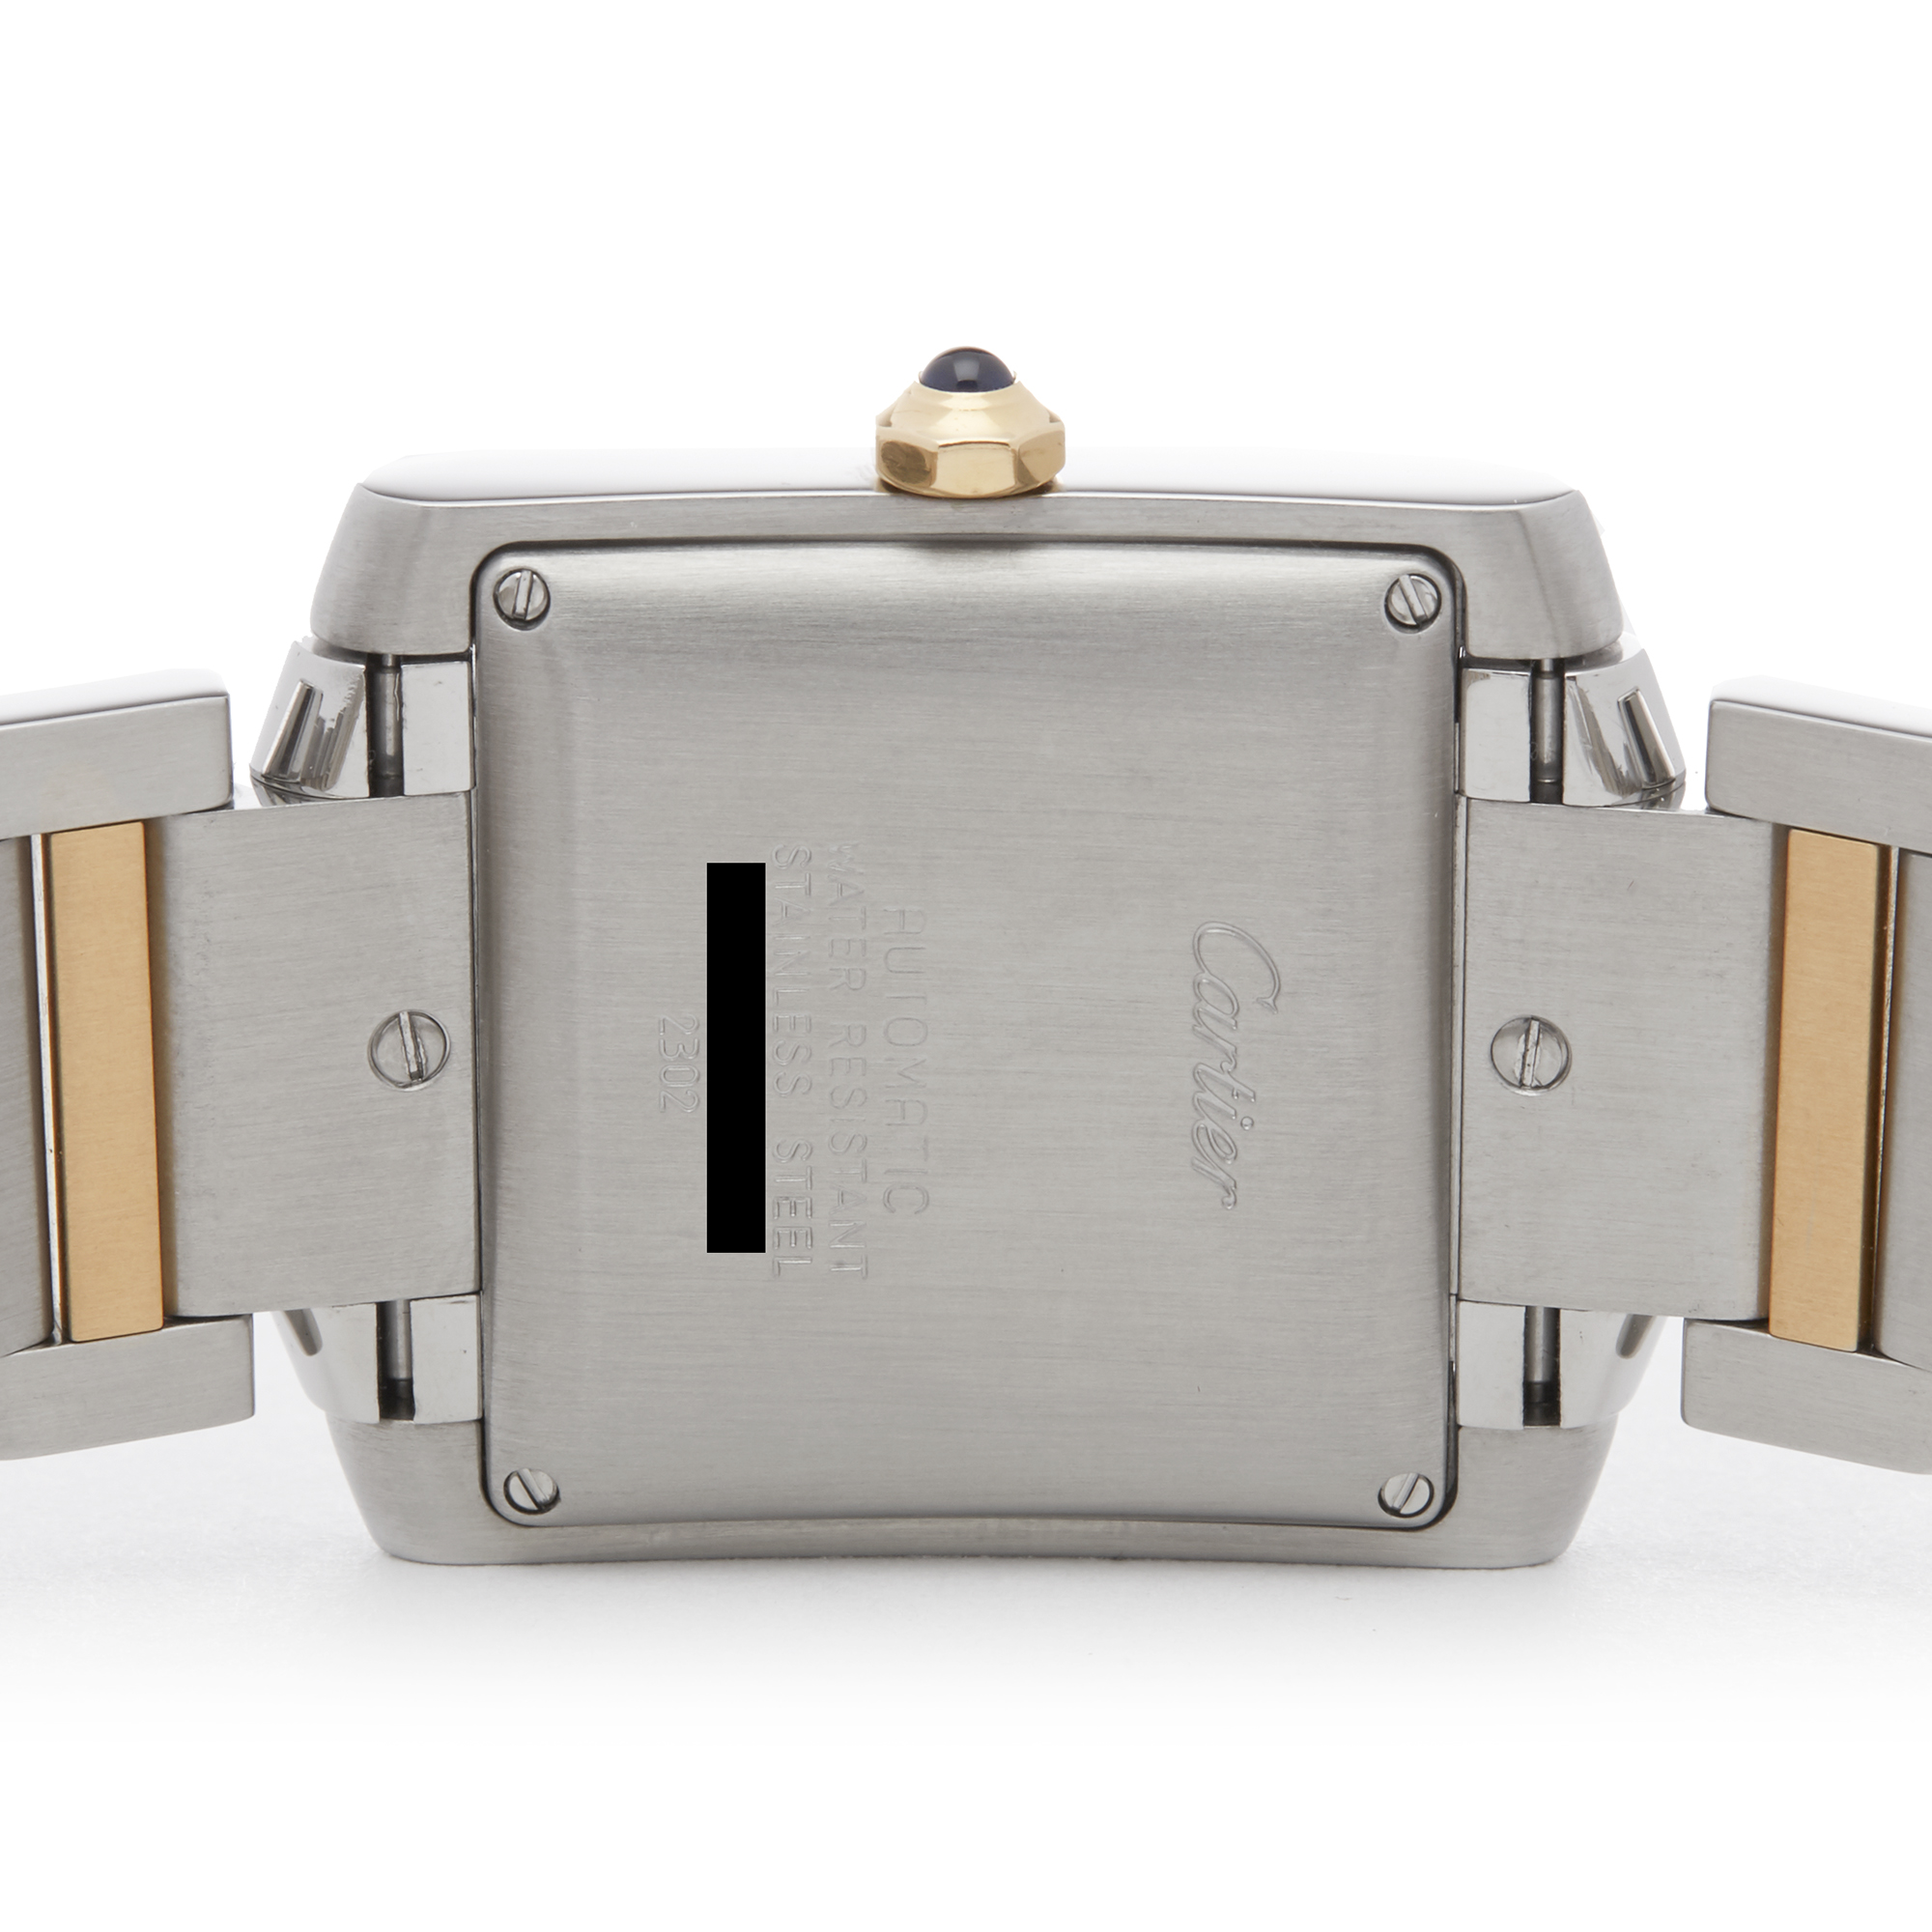 Cartier Tank Francaise 2302 Unisex Stainless Steel Watch - Image 4 of 8